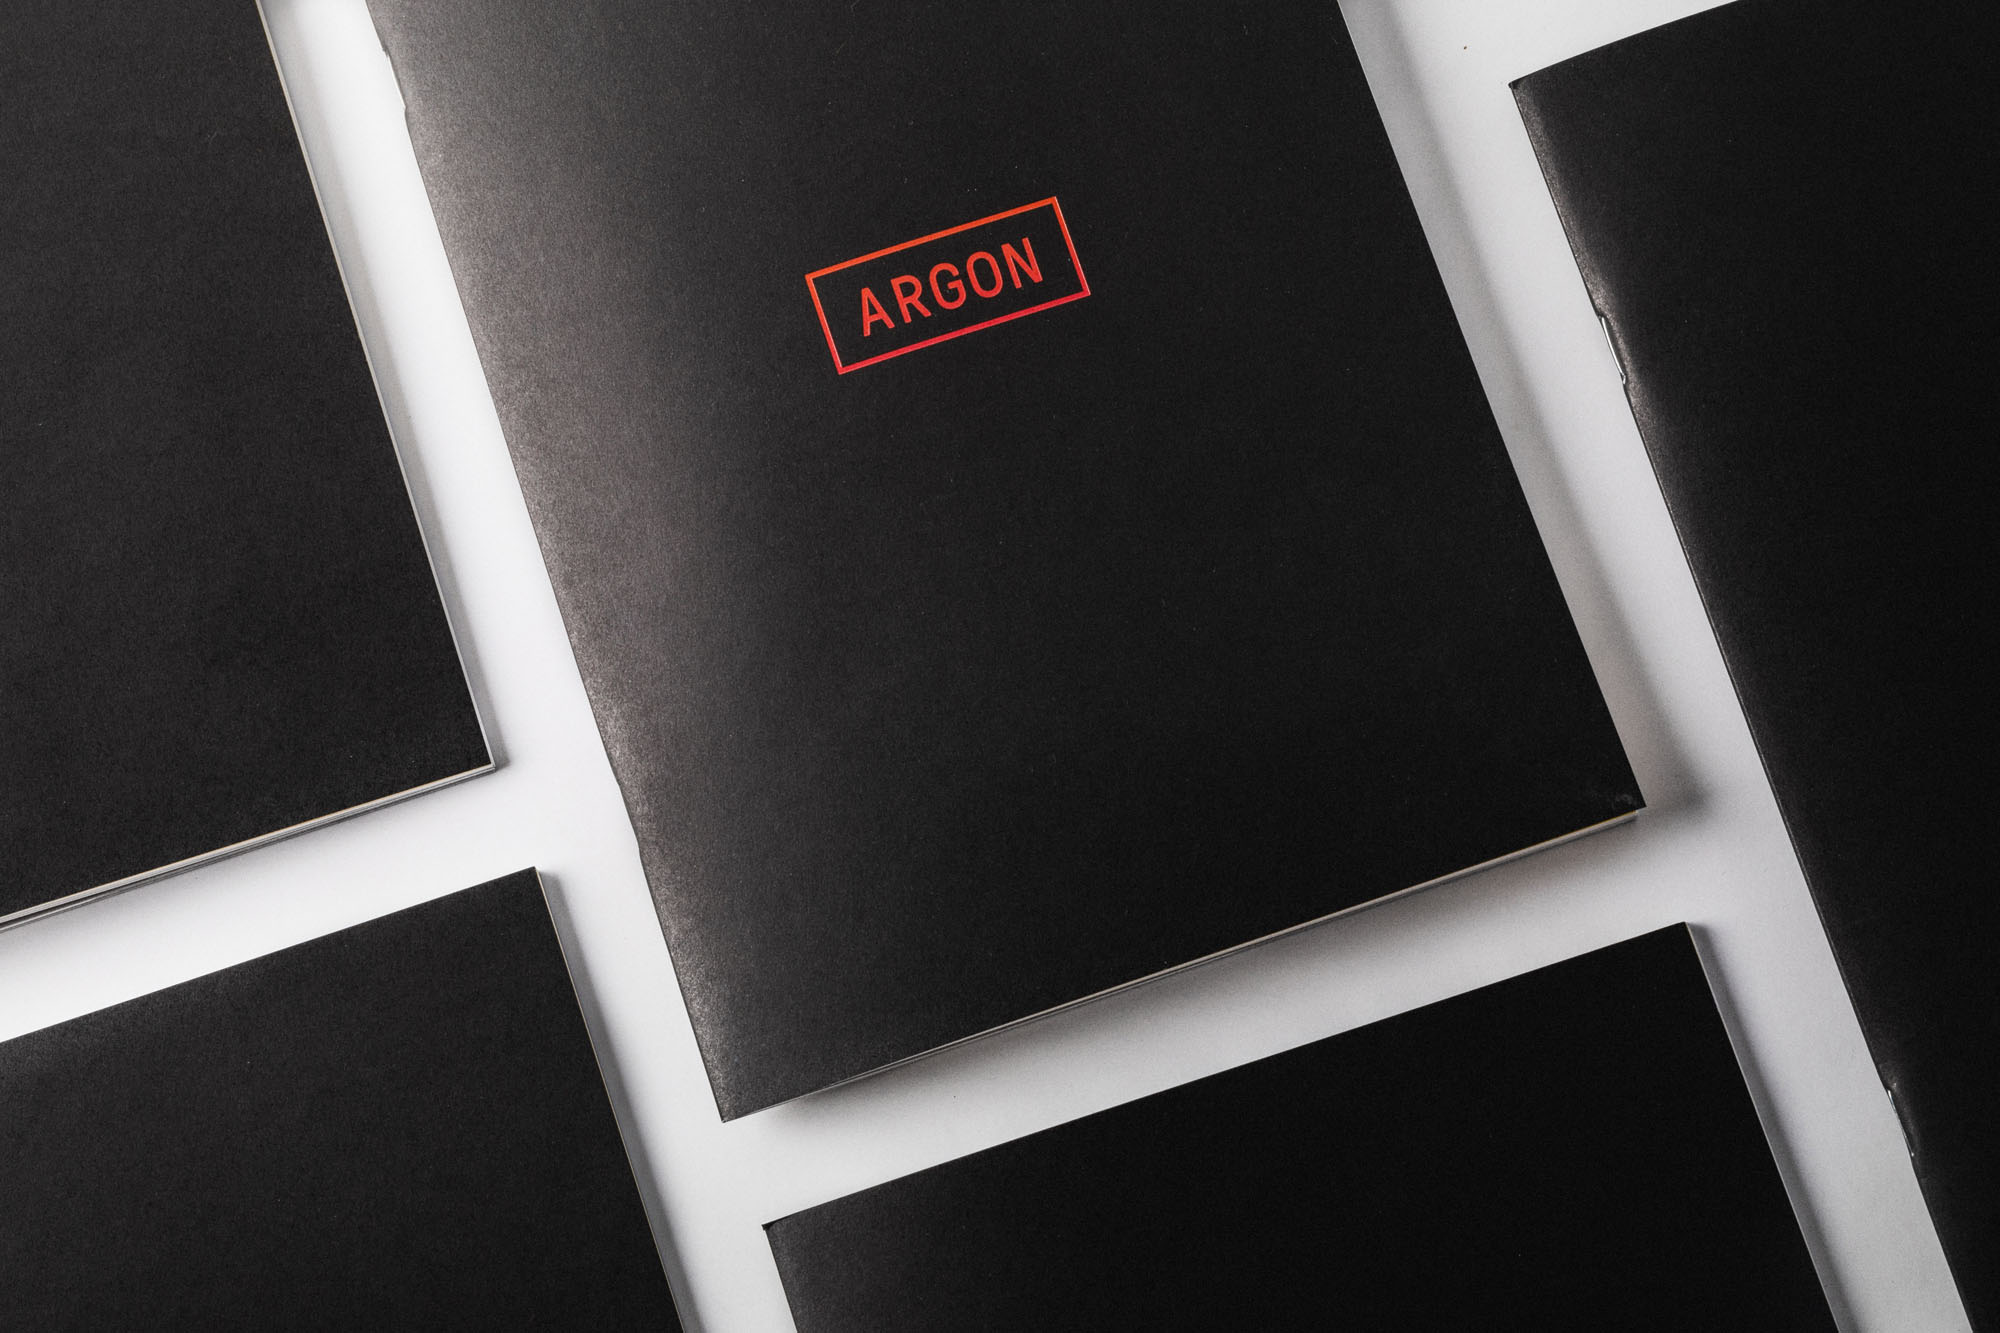 The argon logo, printed on black paper book covers